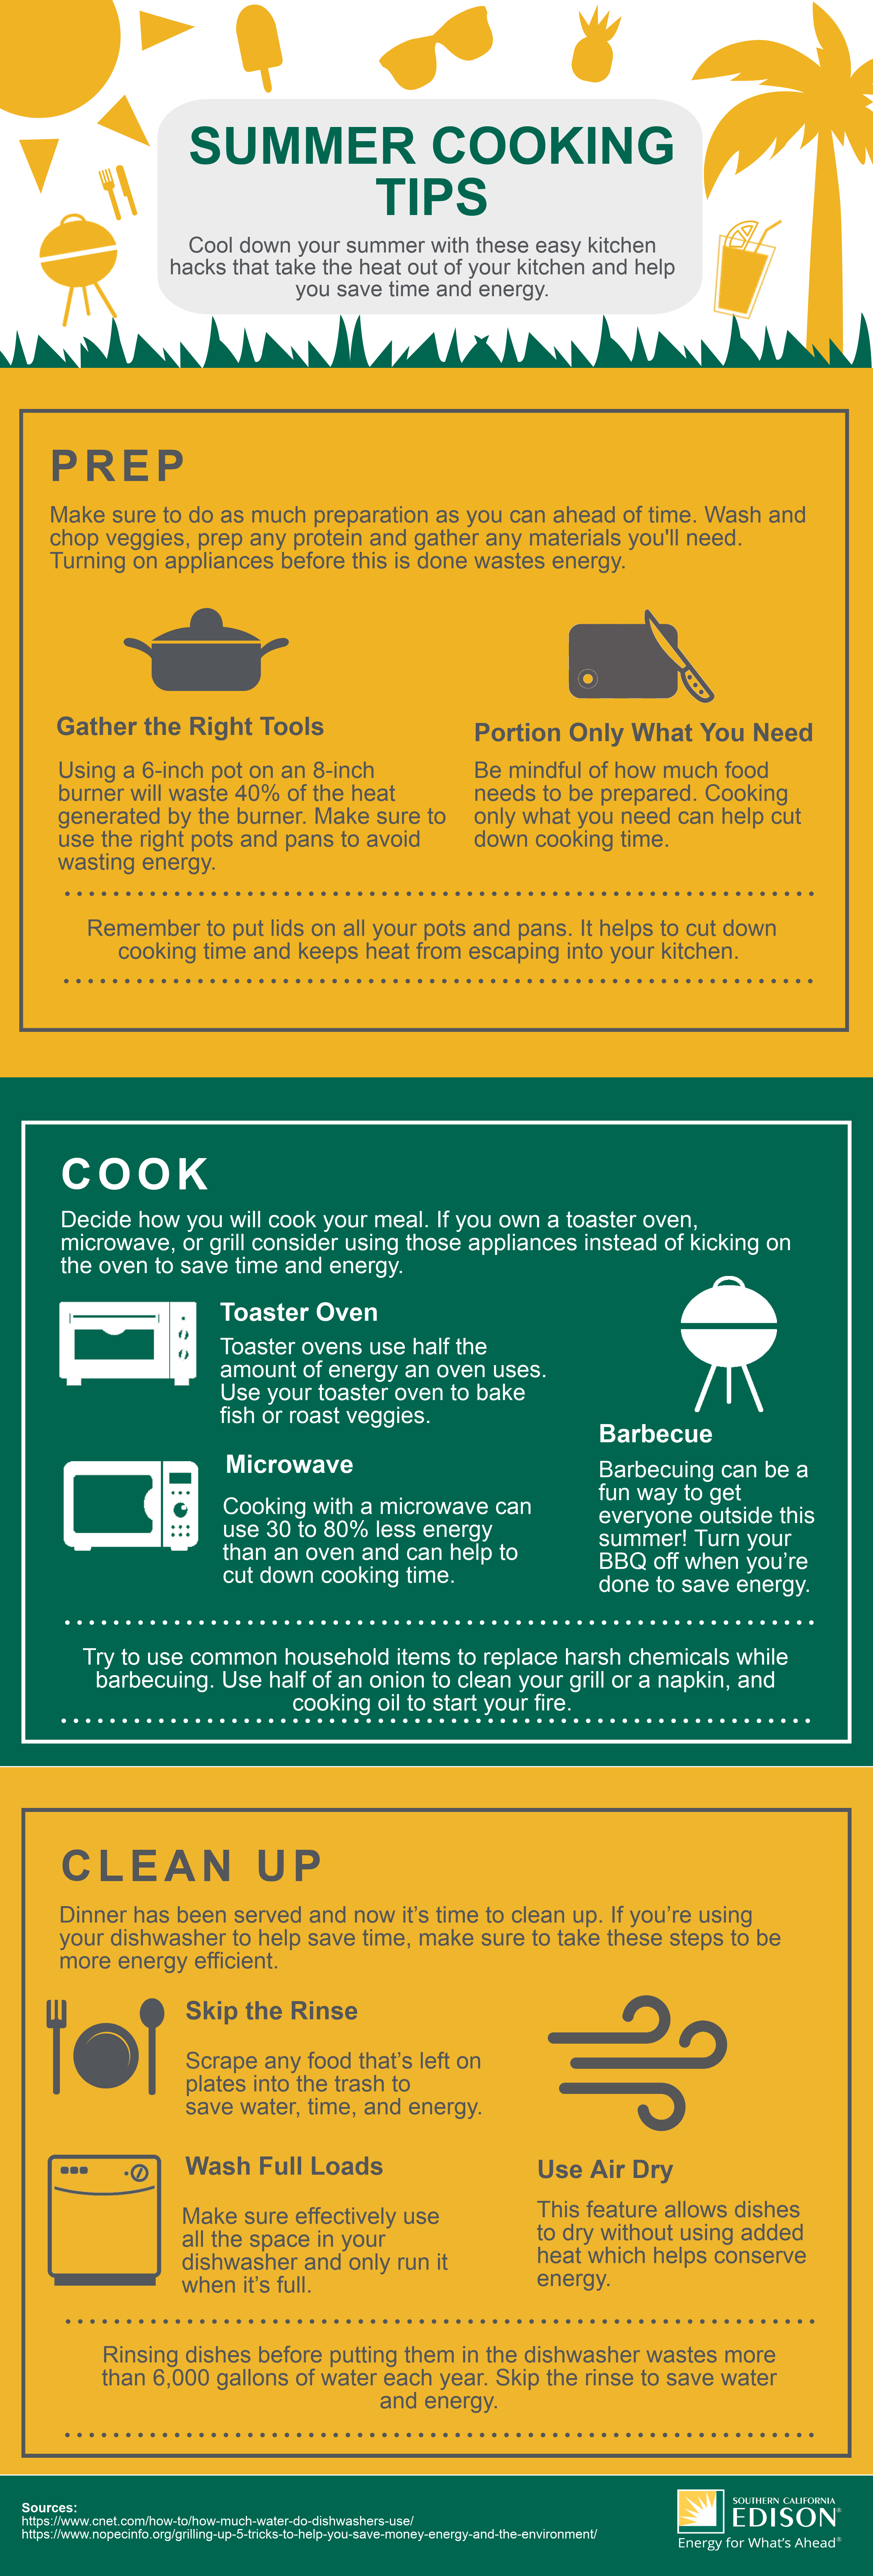 INFOGRAPHIC: Take the Heat Out of the Kitchen | Inside Edison